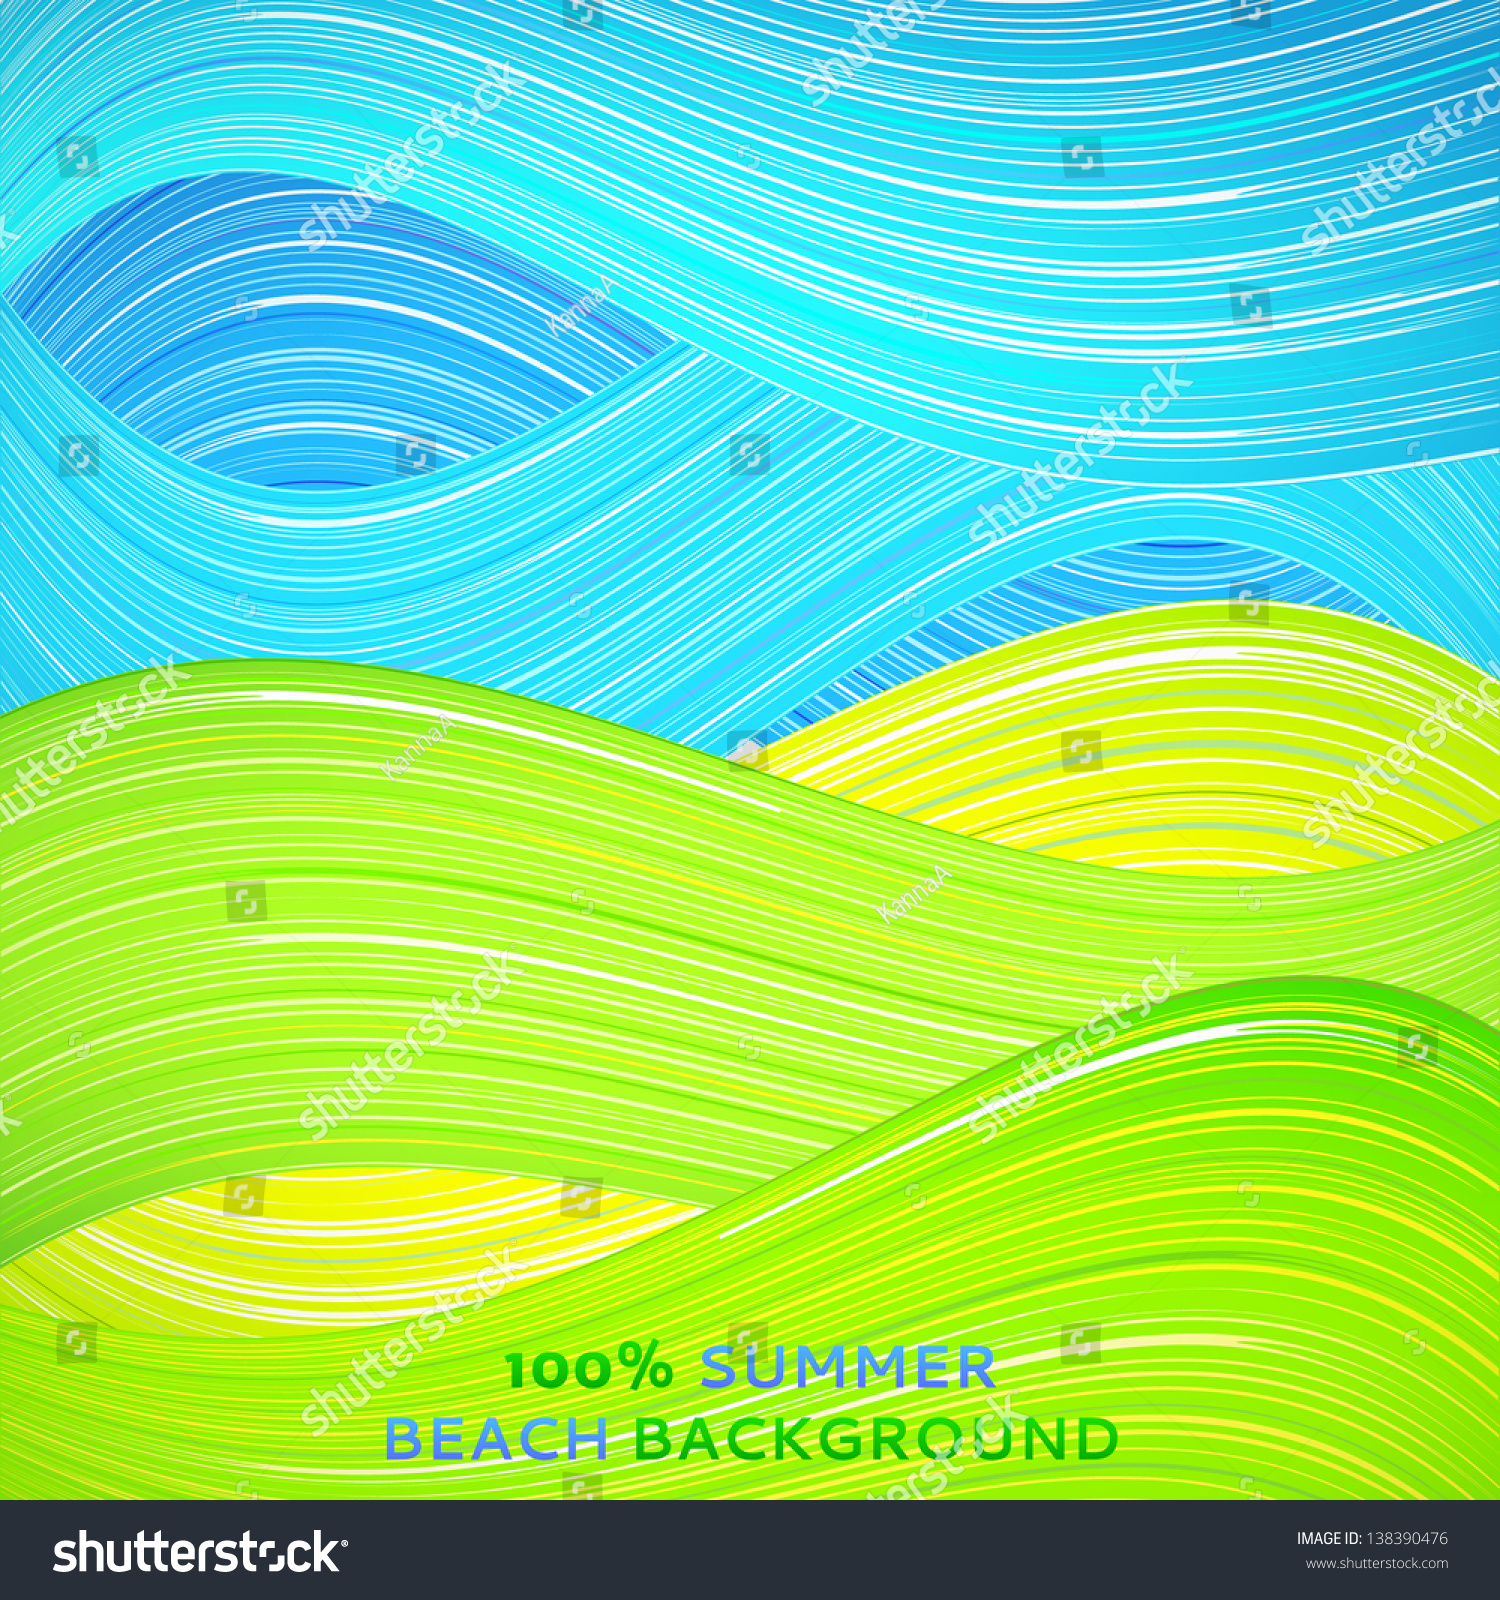 Green Book Cover Background : Green and blue wave background vector illustration for